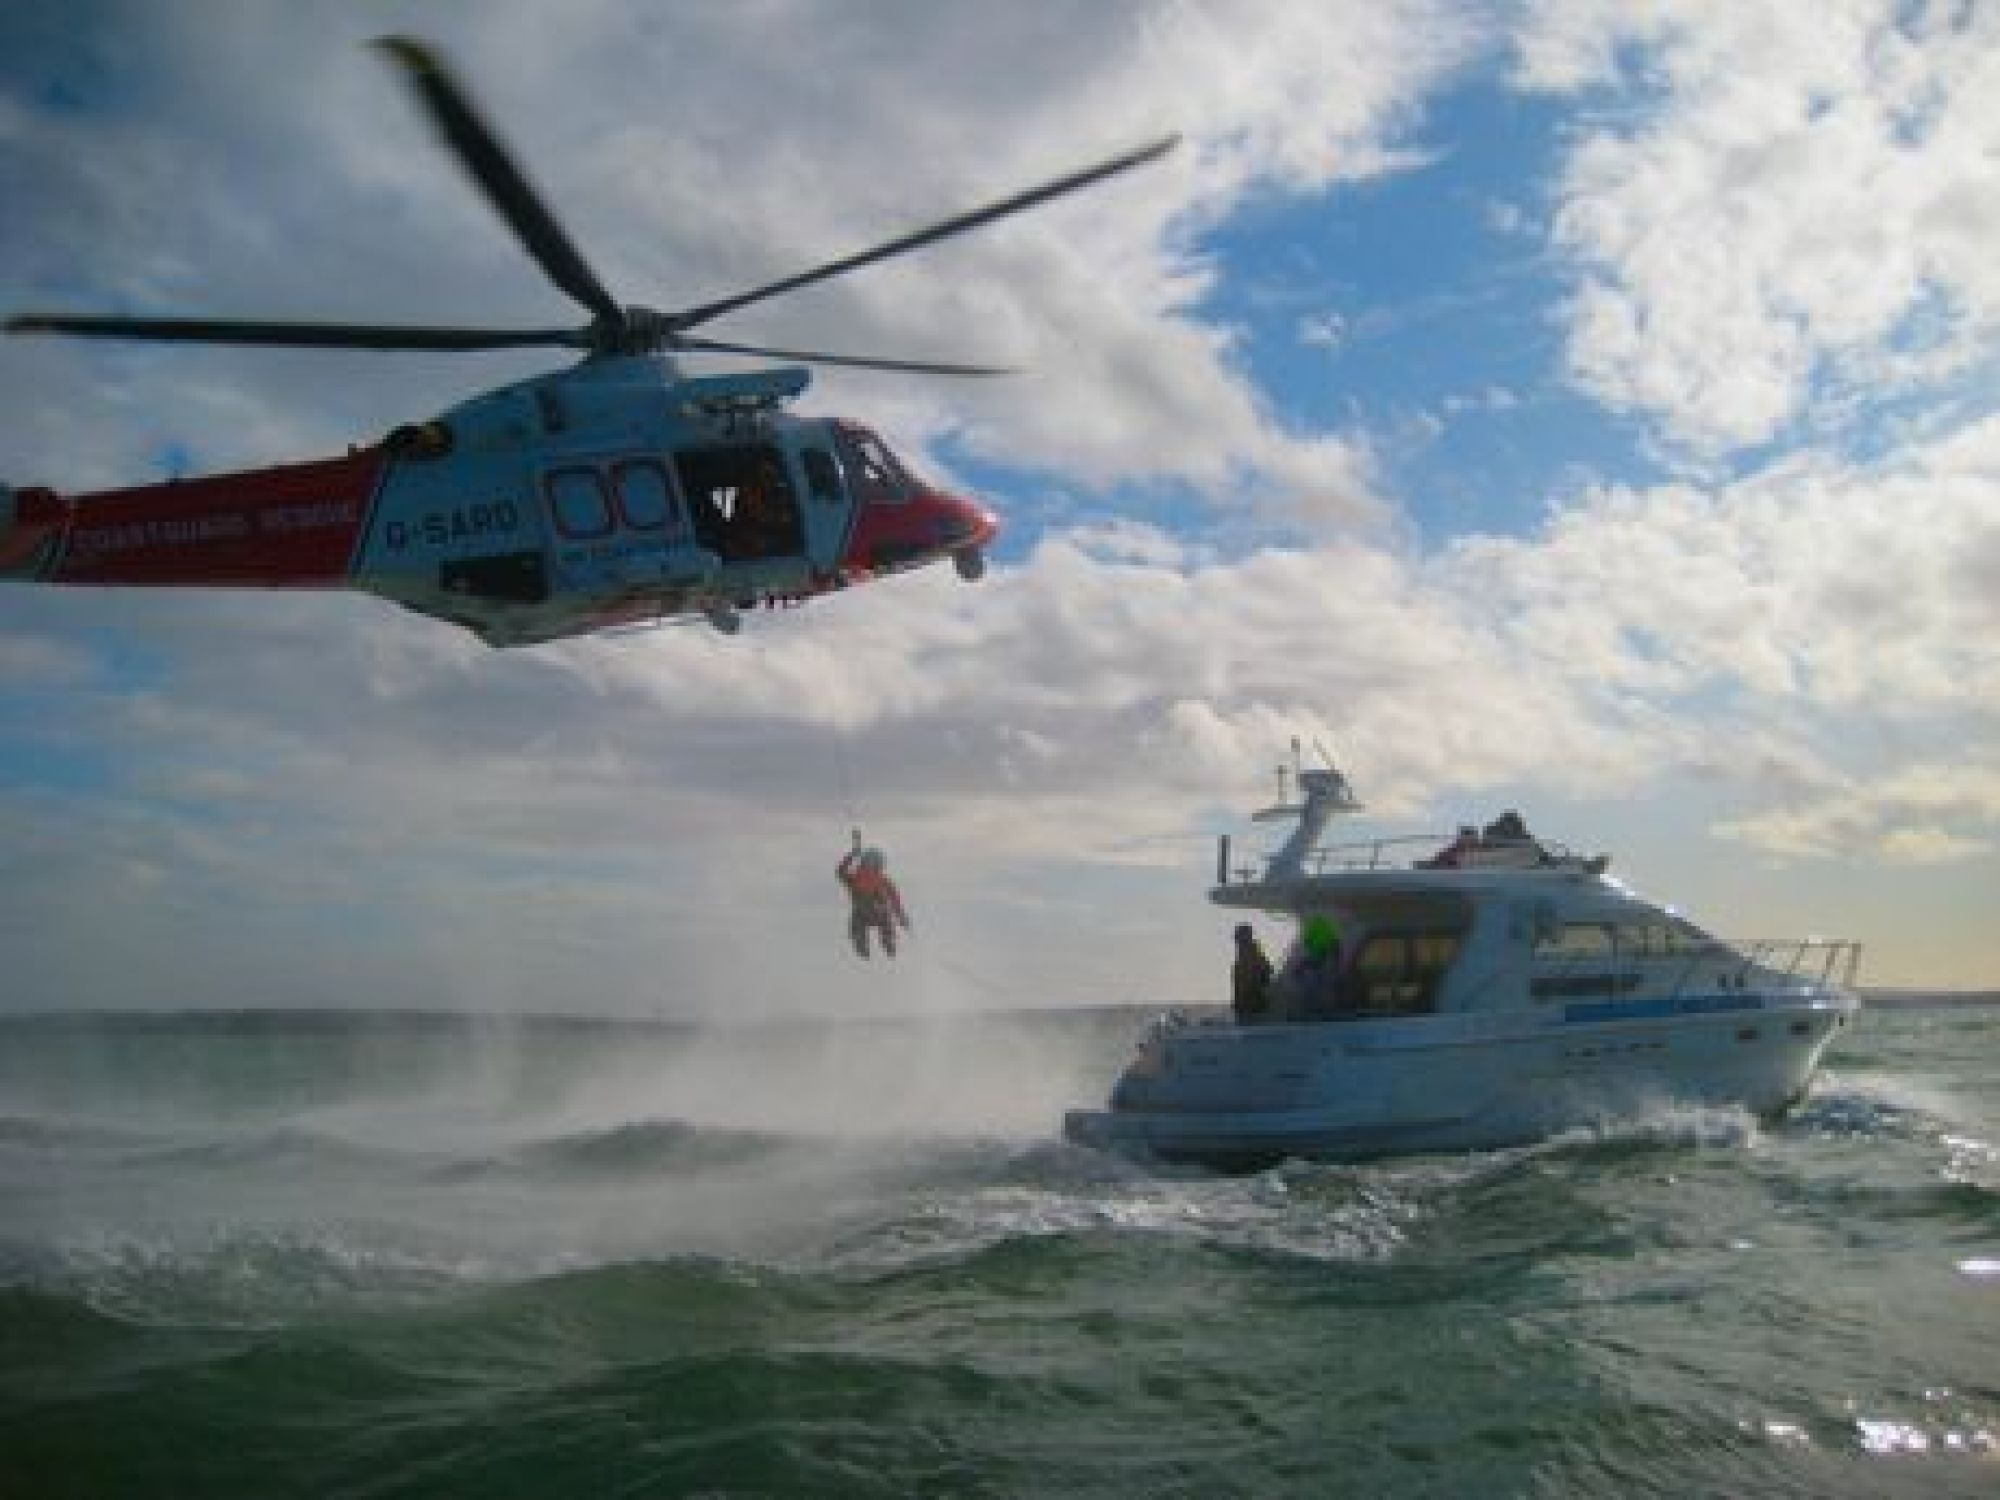 RYA Yachtmaster students on our 45' flybridge motor cruiser engaged in helicopter rescue drills